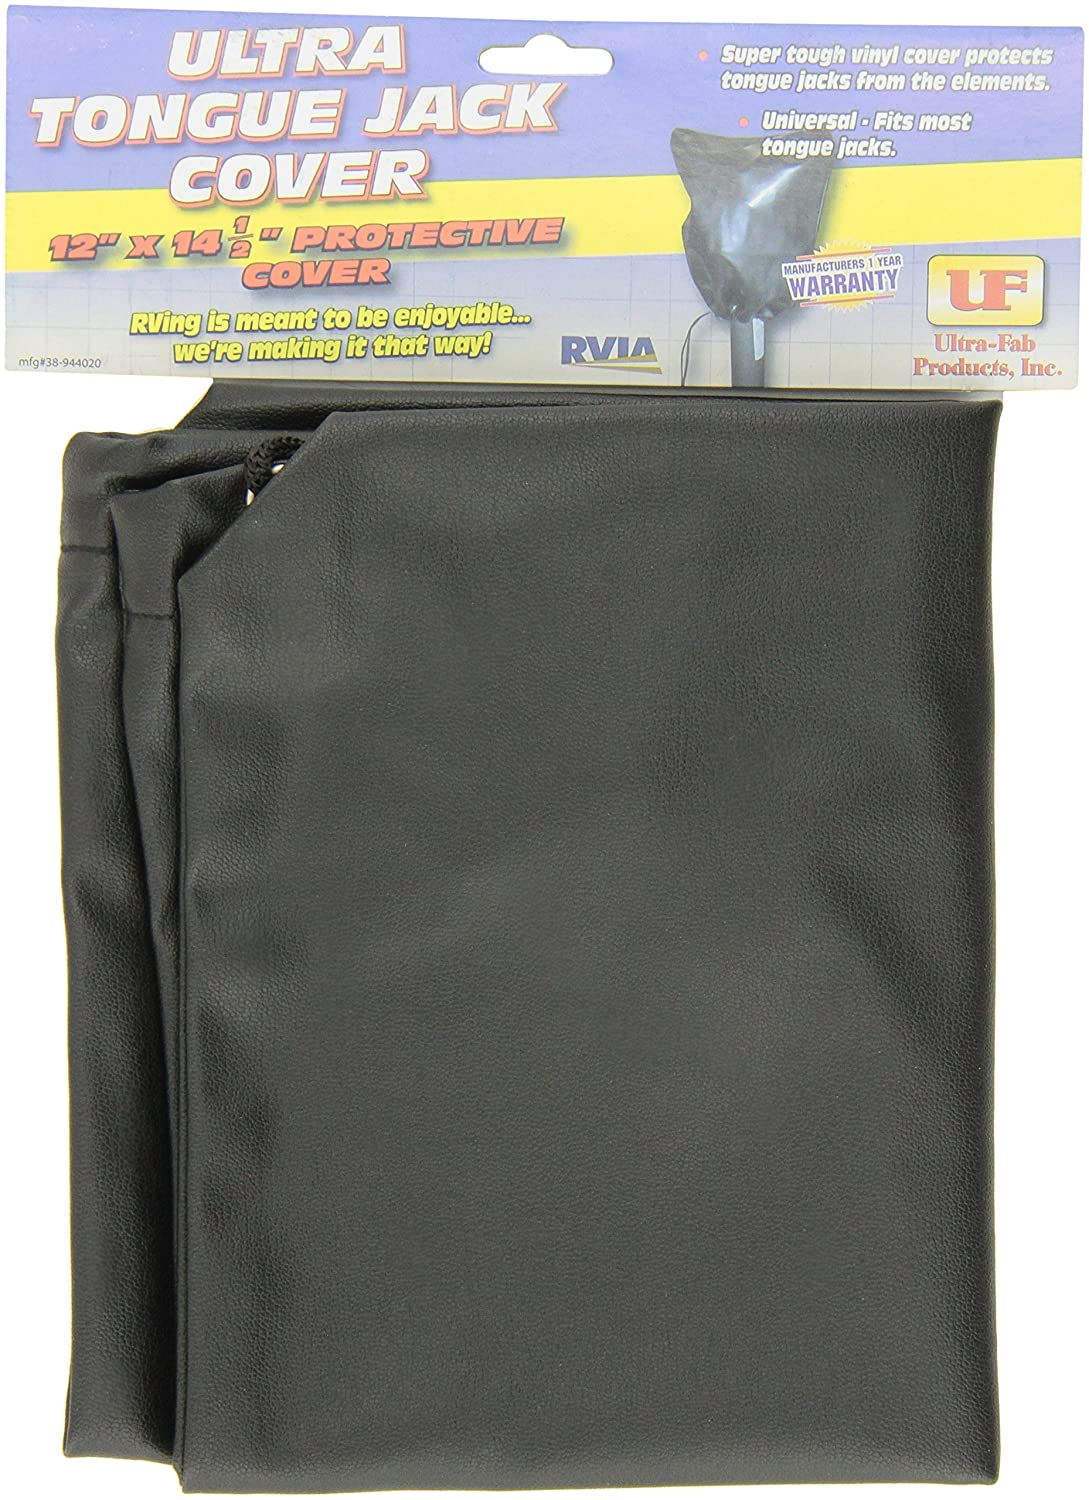 Ultra Fab Products 38-944020 Vinyl Black Power Head Jack Cover with Draw String Ultra-Fab Products